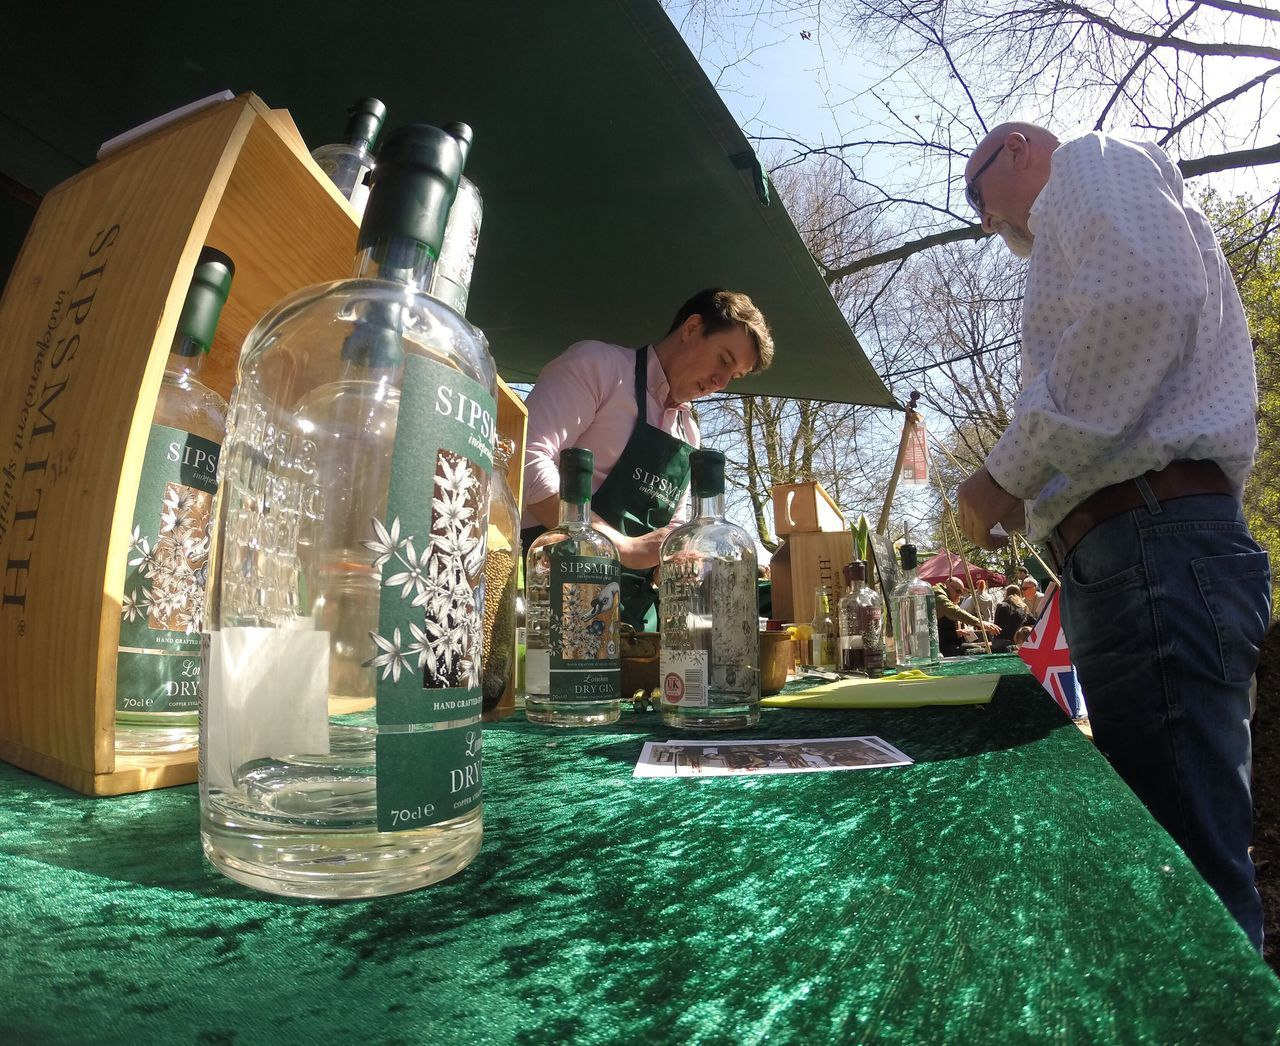 A Customer Sampling 'Sipsmith Gin' At Stall In Liverpool's Food, Drink & Lifestyle Festival- Sefton Park...x Sipsmith Gin GIN Alcohol Customer  Shopper Shopping ♡ Food And Drink Drink Festival Sefton Park Liverpool Itsliverpool First Eyeem Photo Livfoodfest LFDF2016